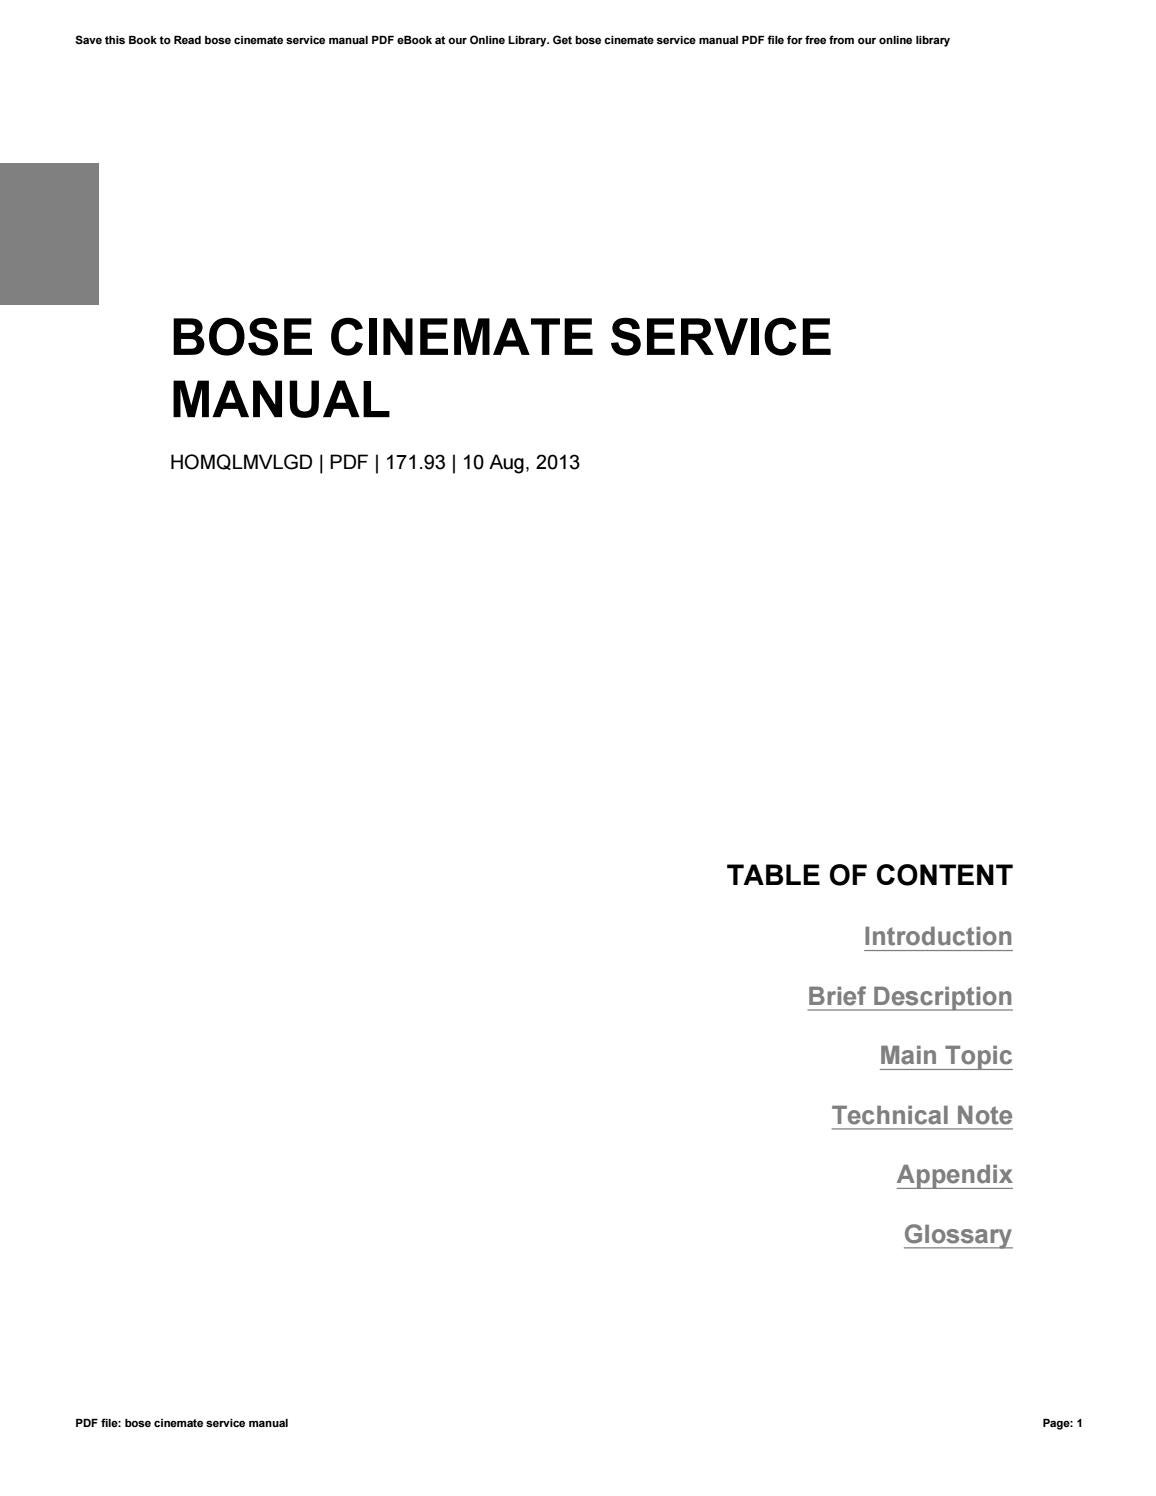 Bose cinemate service manual by Michael Underwood - issuuIssuu